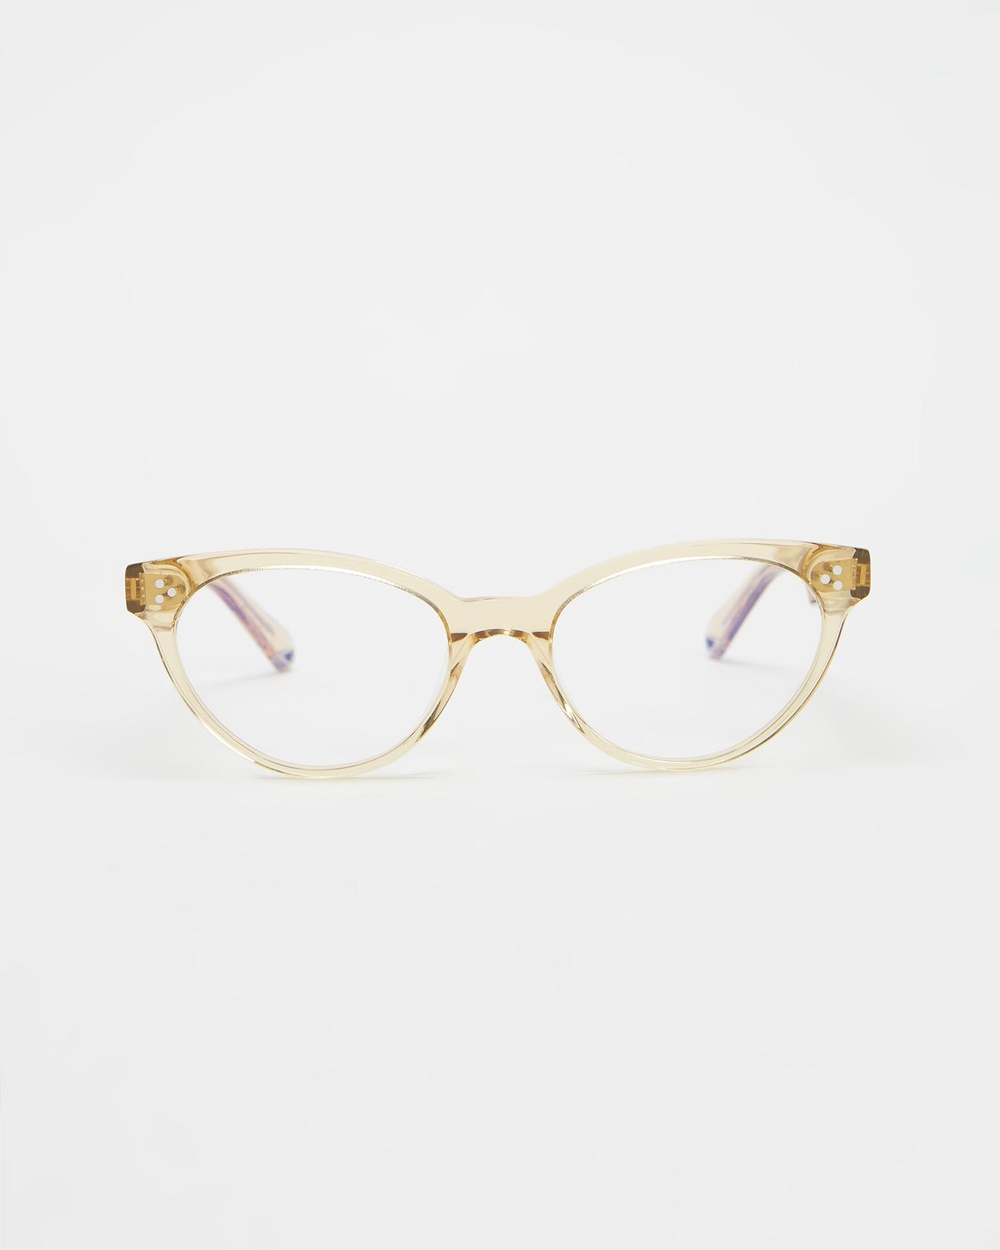 Pacifico Optical Francis Travel and Luggage Champagne with Blue Light Lenses